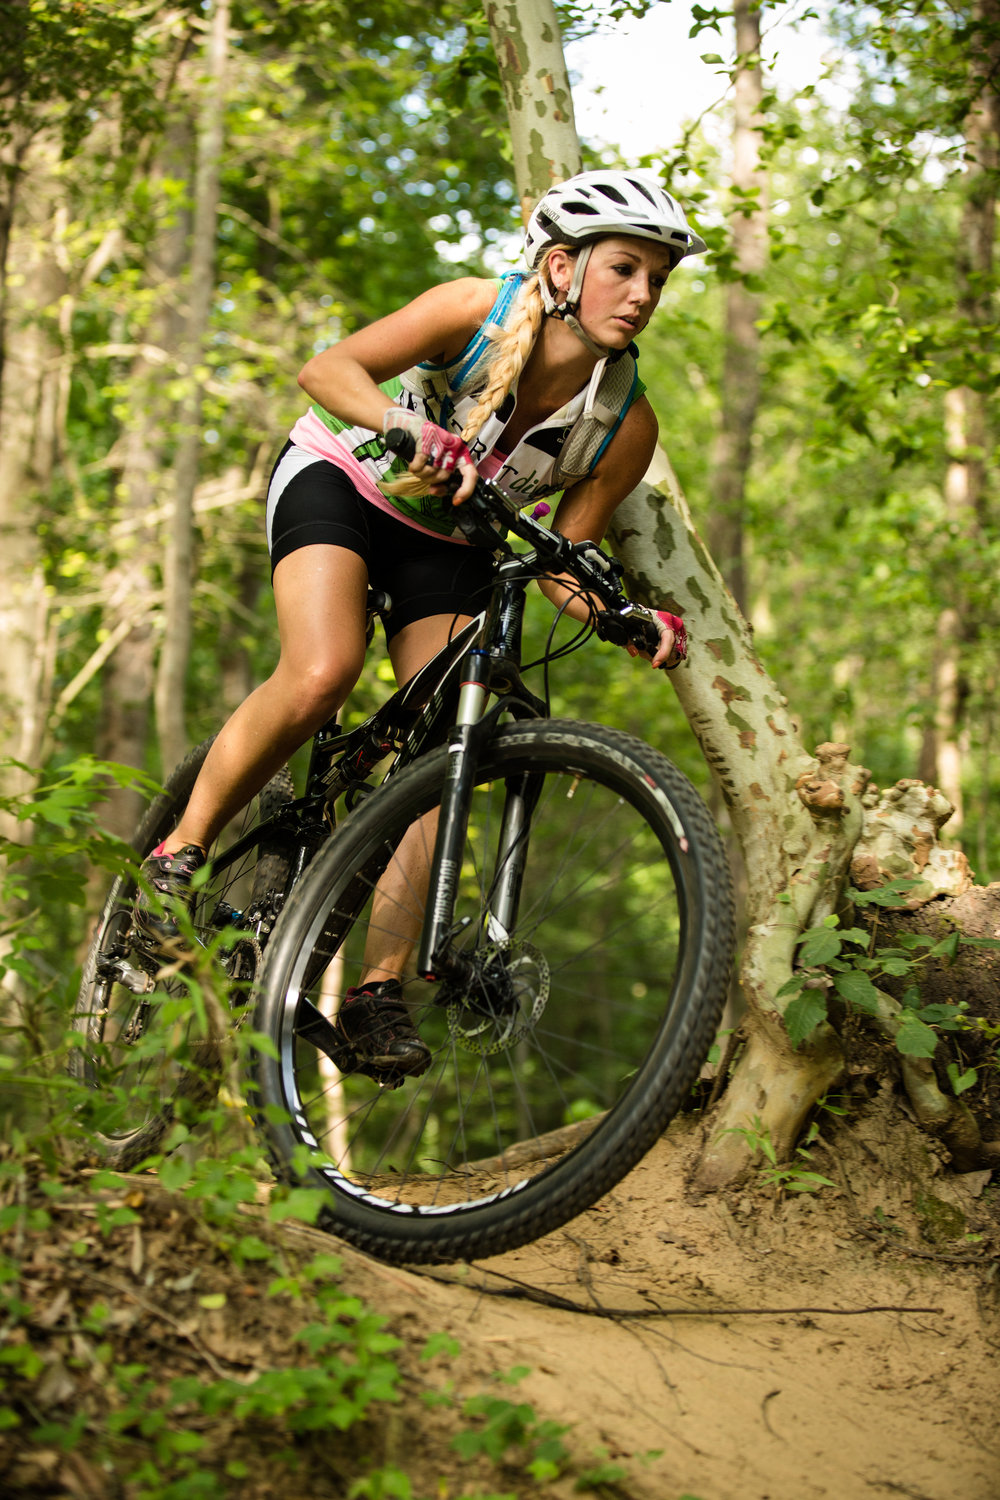 usnwc_rustywilliams_mountain_bike_girl.jpg